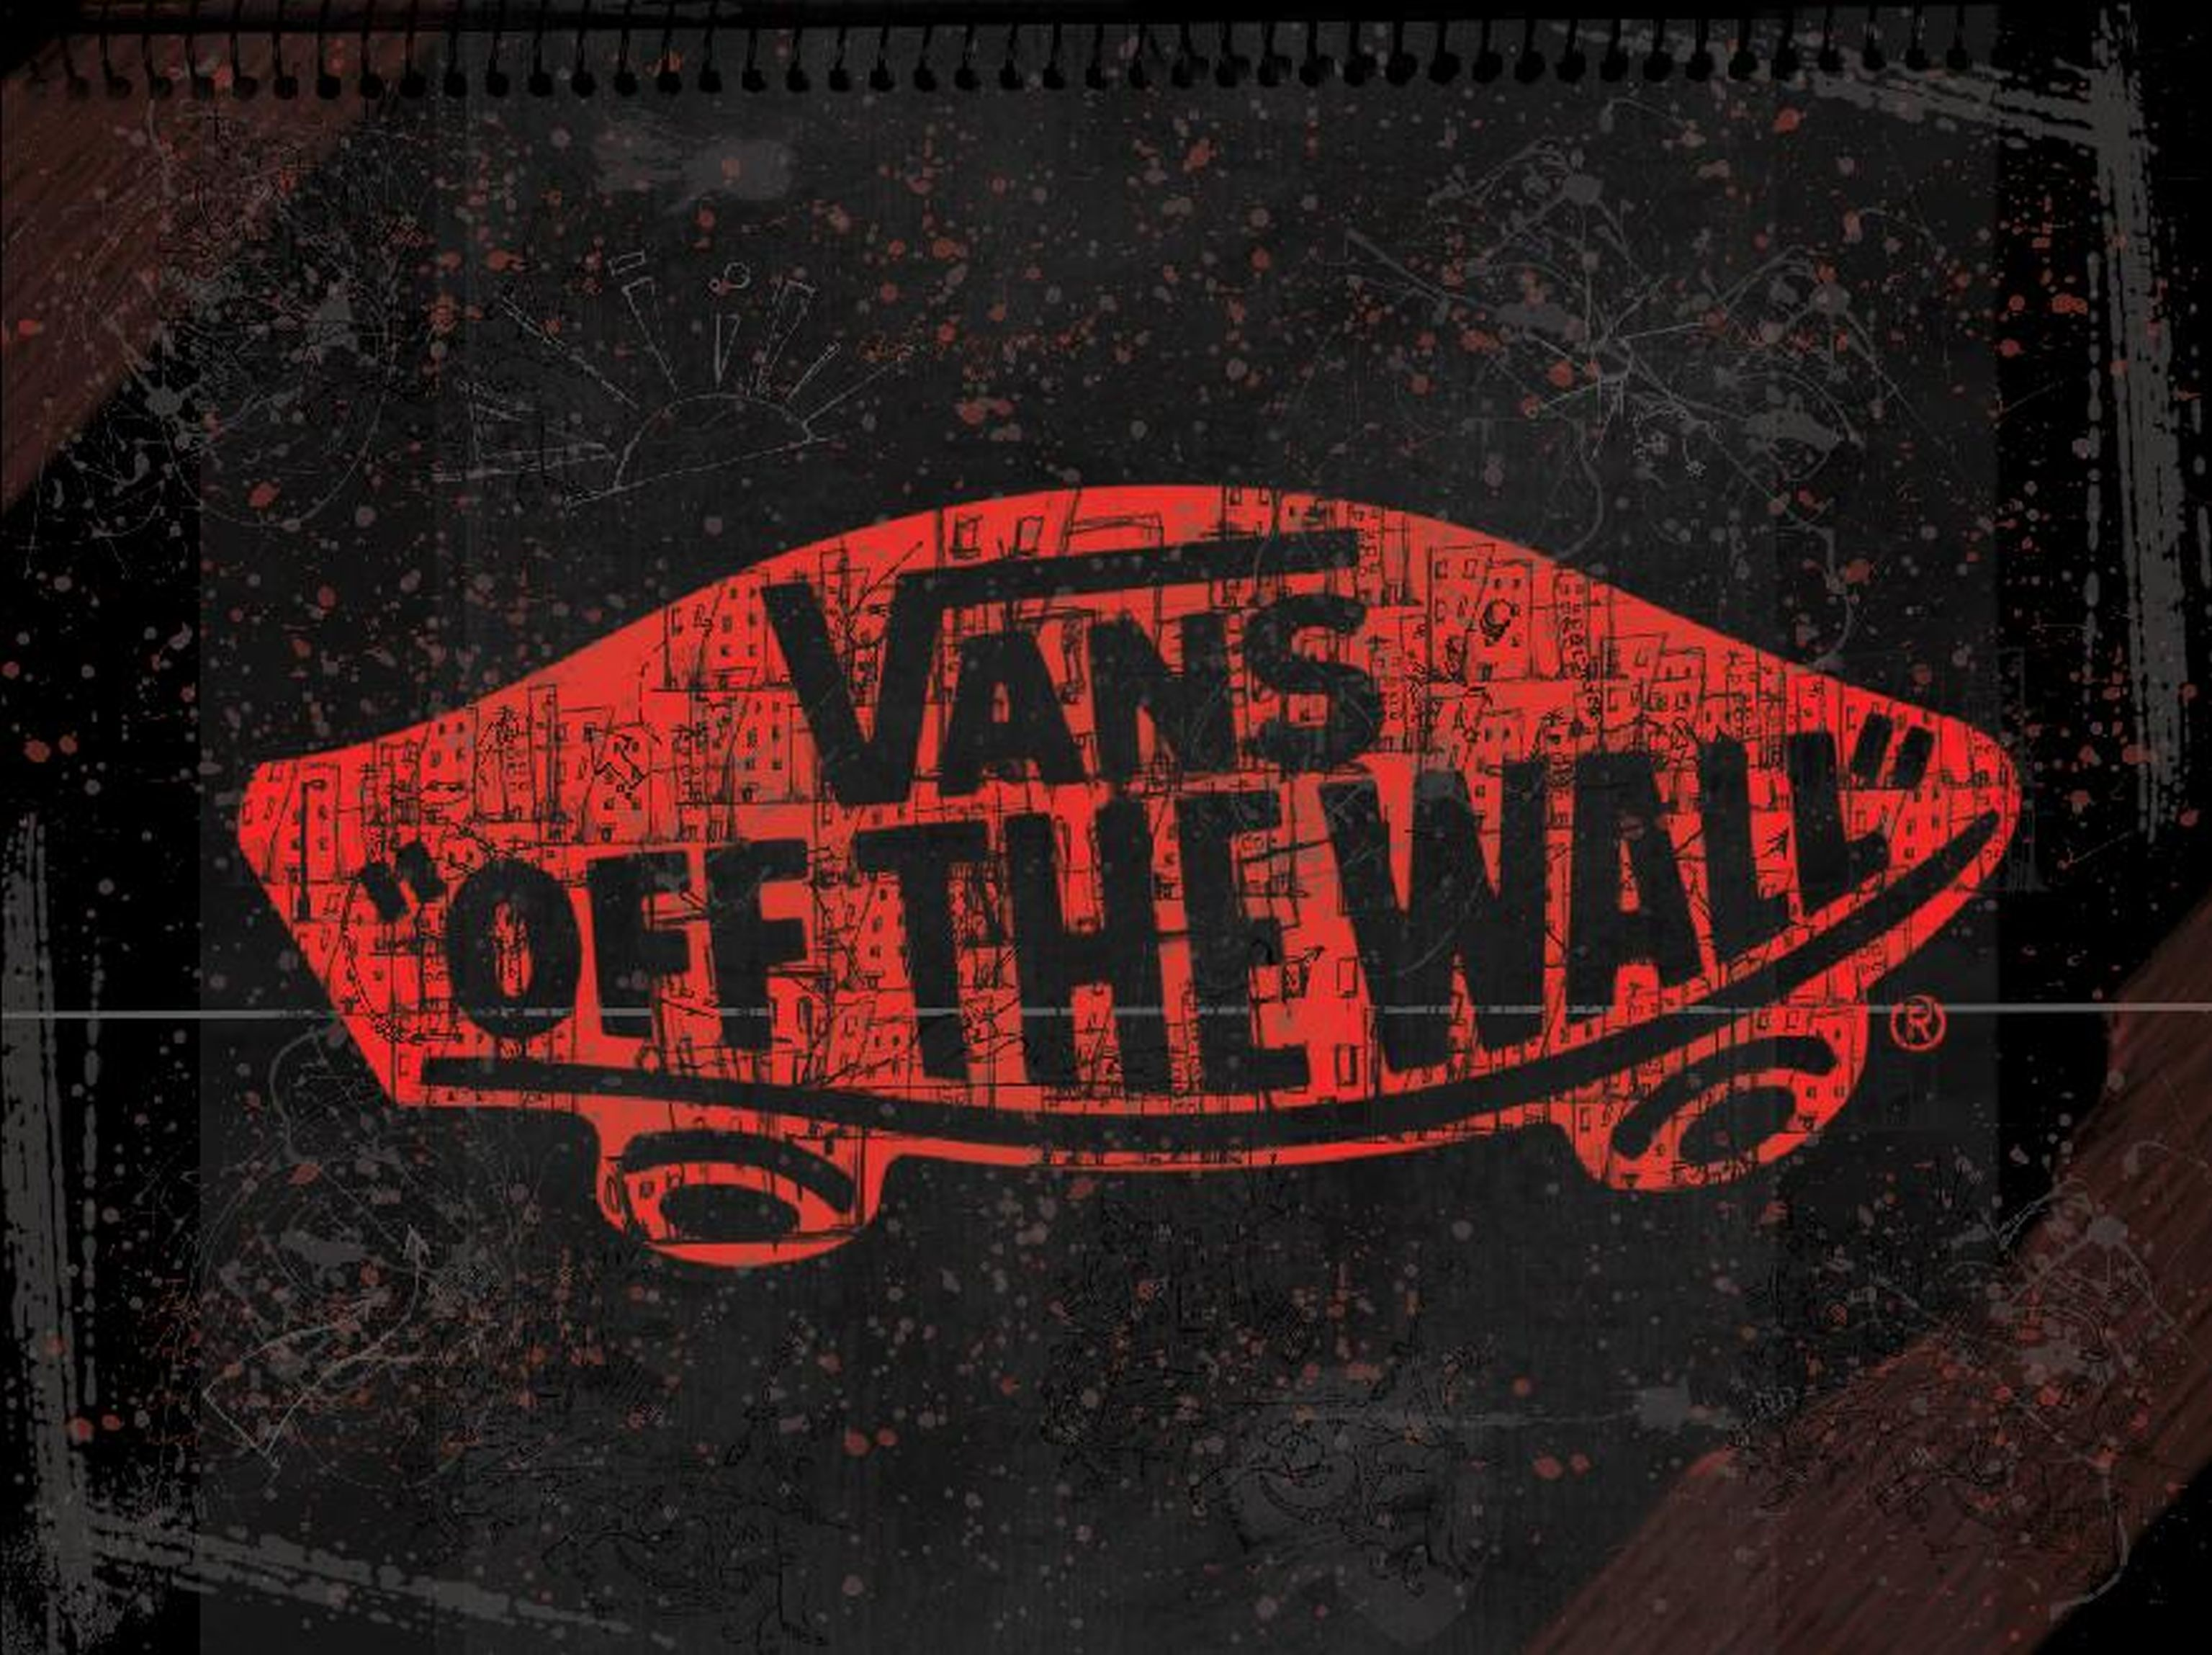 Vans iphone wallpaper tumblr - Red Vans Off The Wall Skateboarding Logo Dark Background Hd Wallpapers Pc Desktop